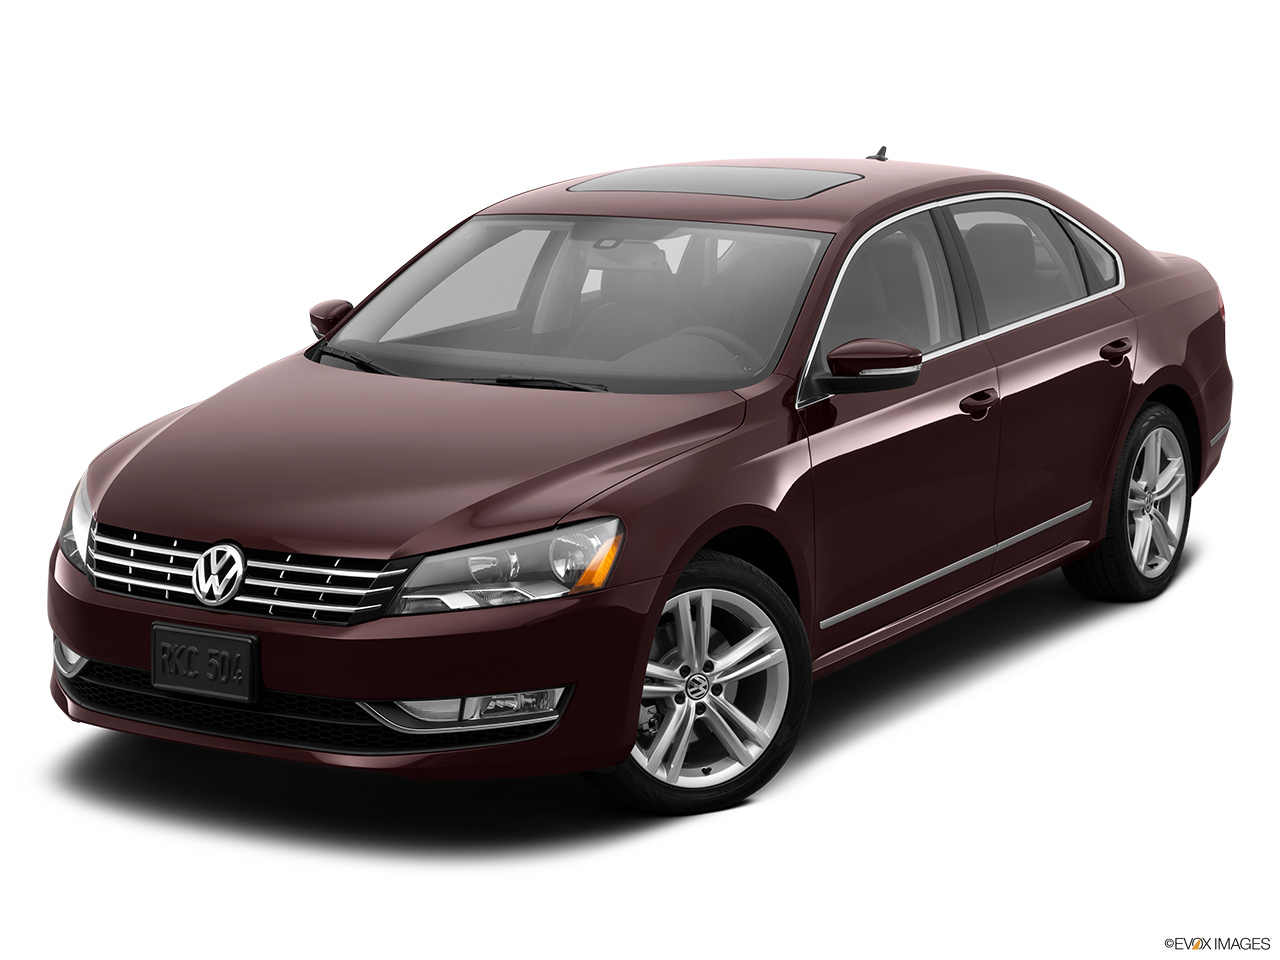 2014 VW Passat TDI SEL Premium, Detailed Walkaround - YouTube